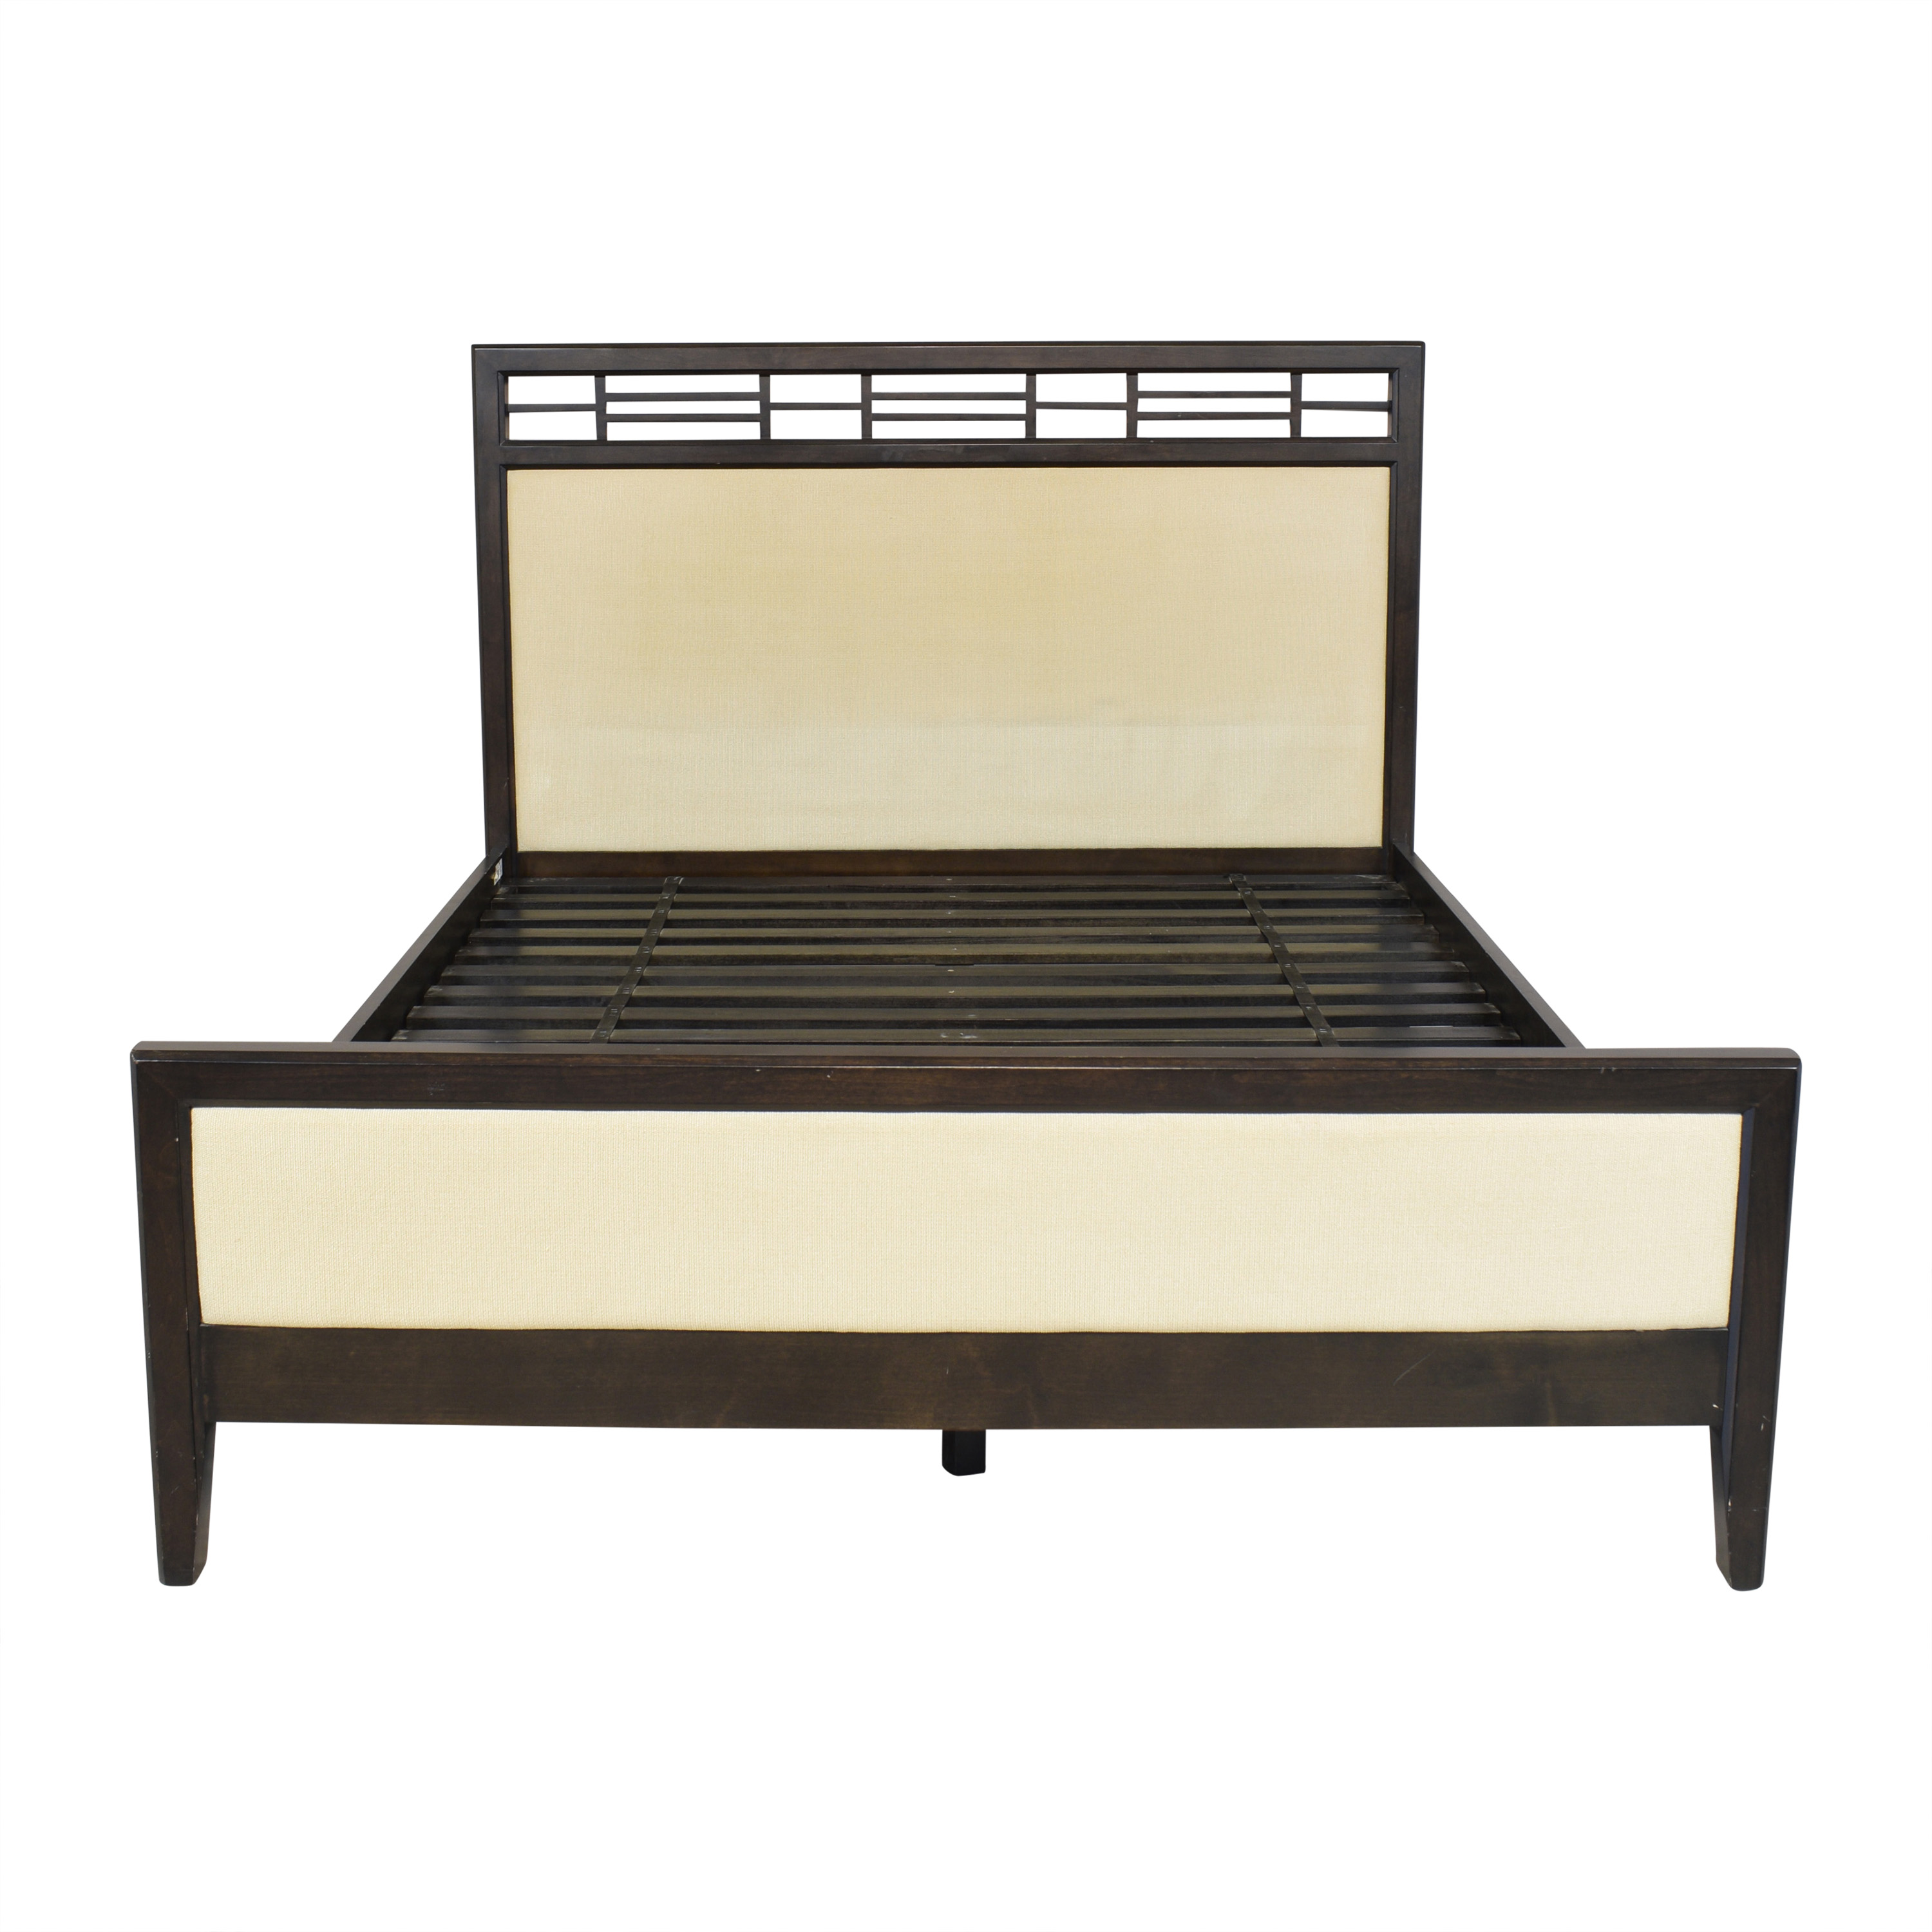 buy Crate & Barrel Upholstered Queen Bed Crate & Barrel